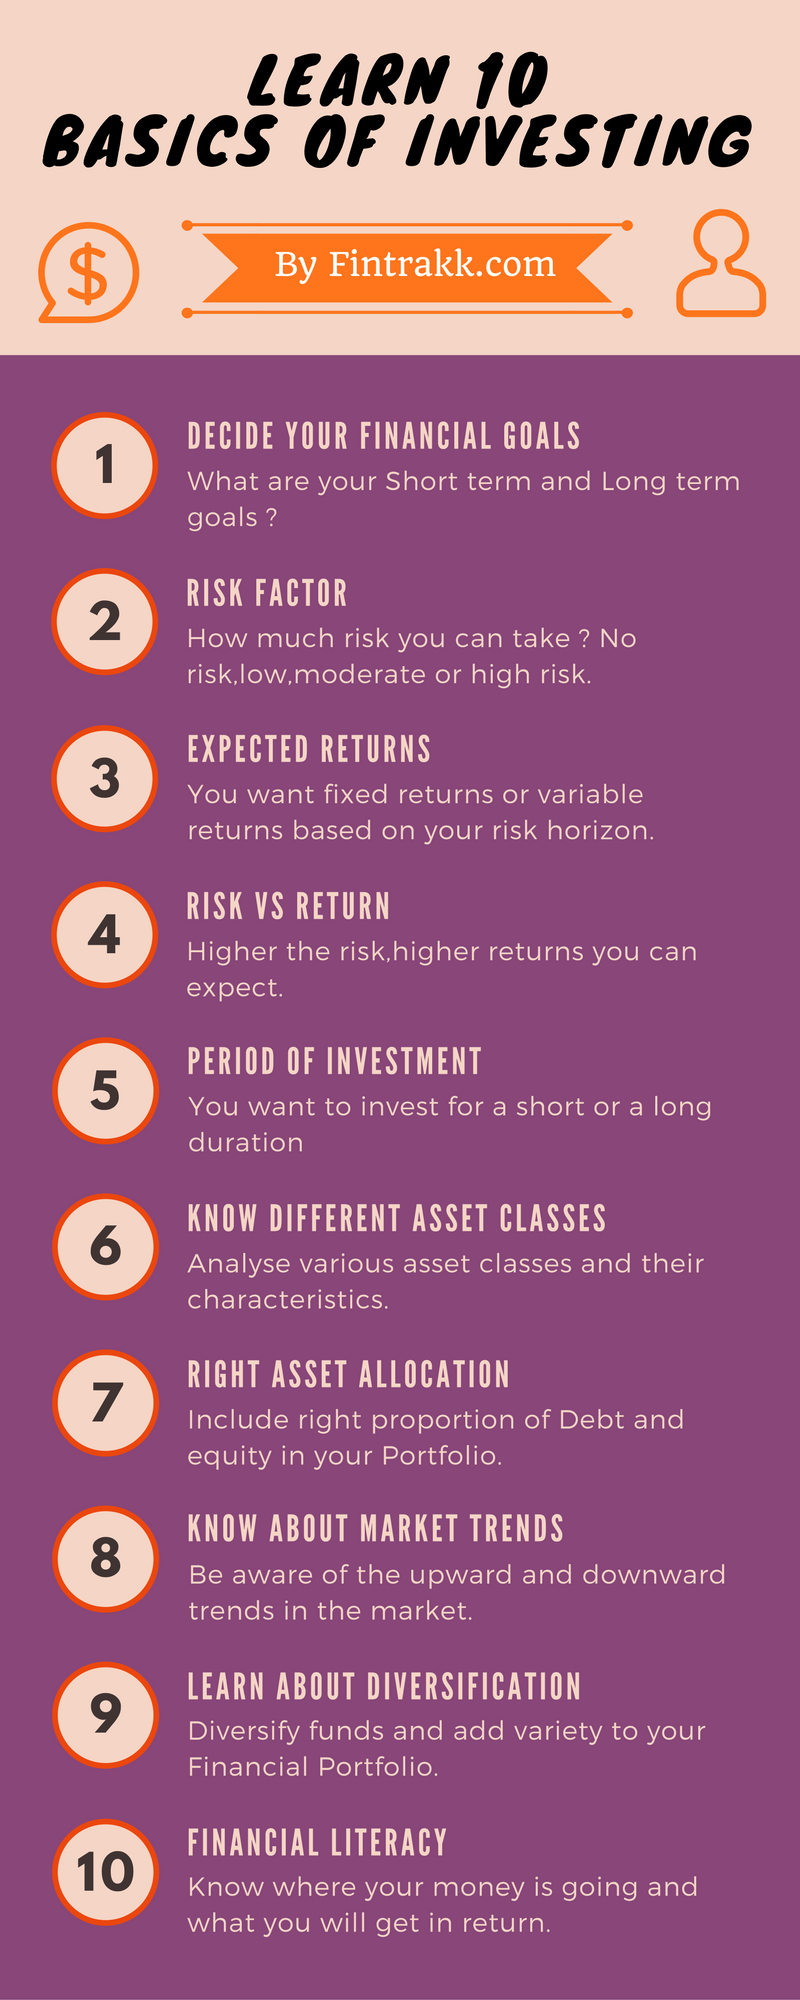 Investing Infographic,how to invest,Investing basics,Investing tips infographic